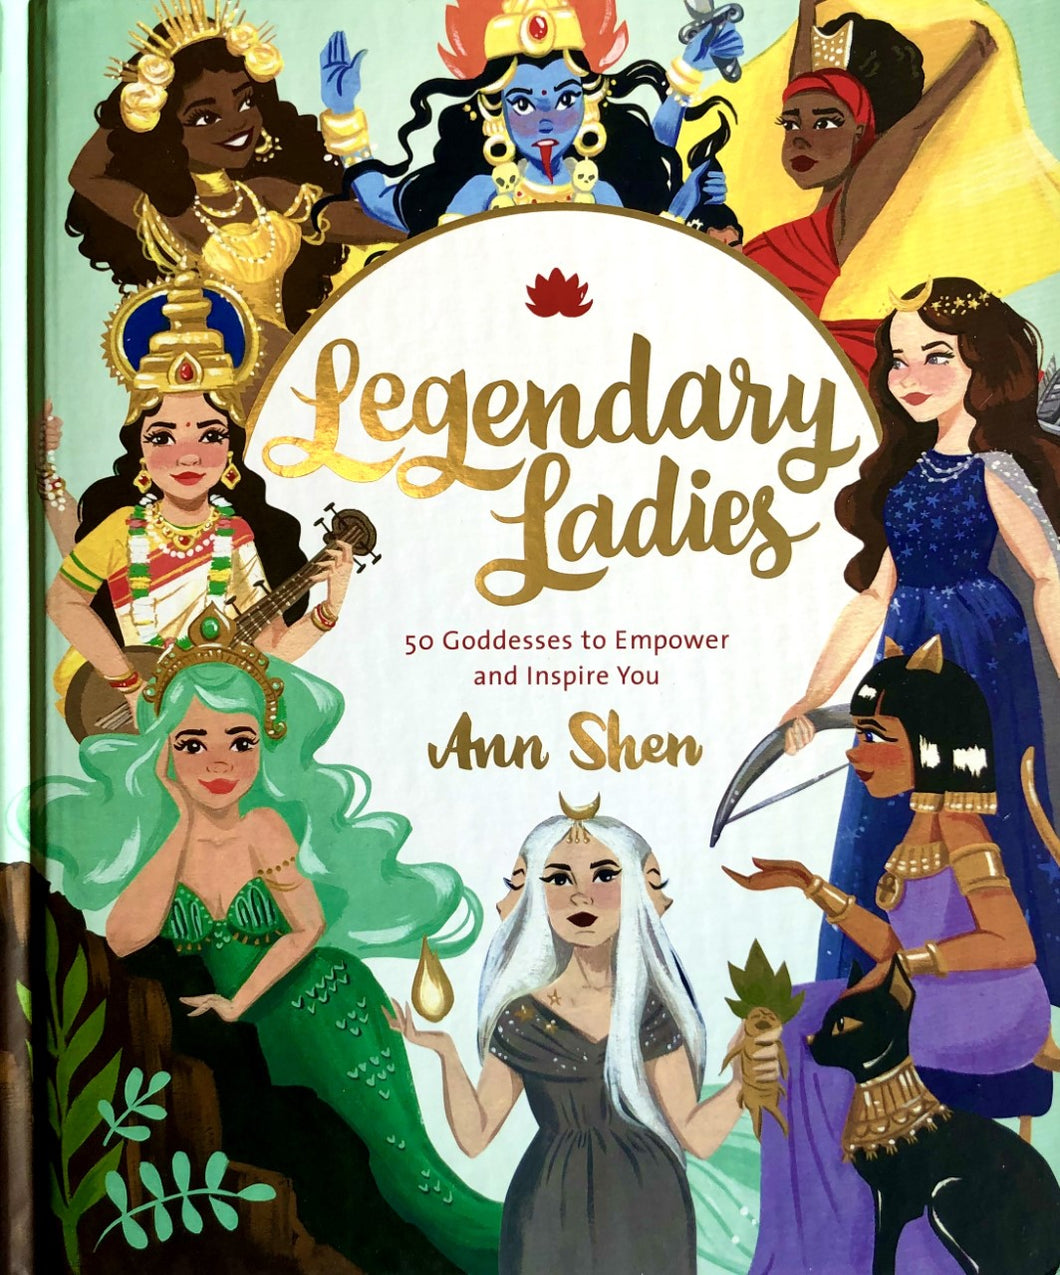 Legendary Ladies: 50 Goddesses to Empower and Inspire You